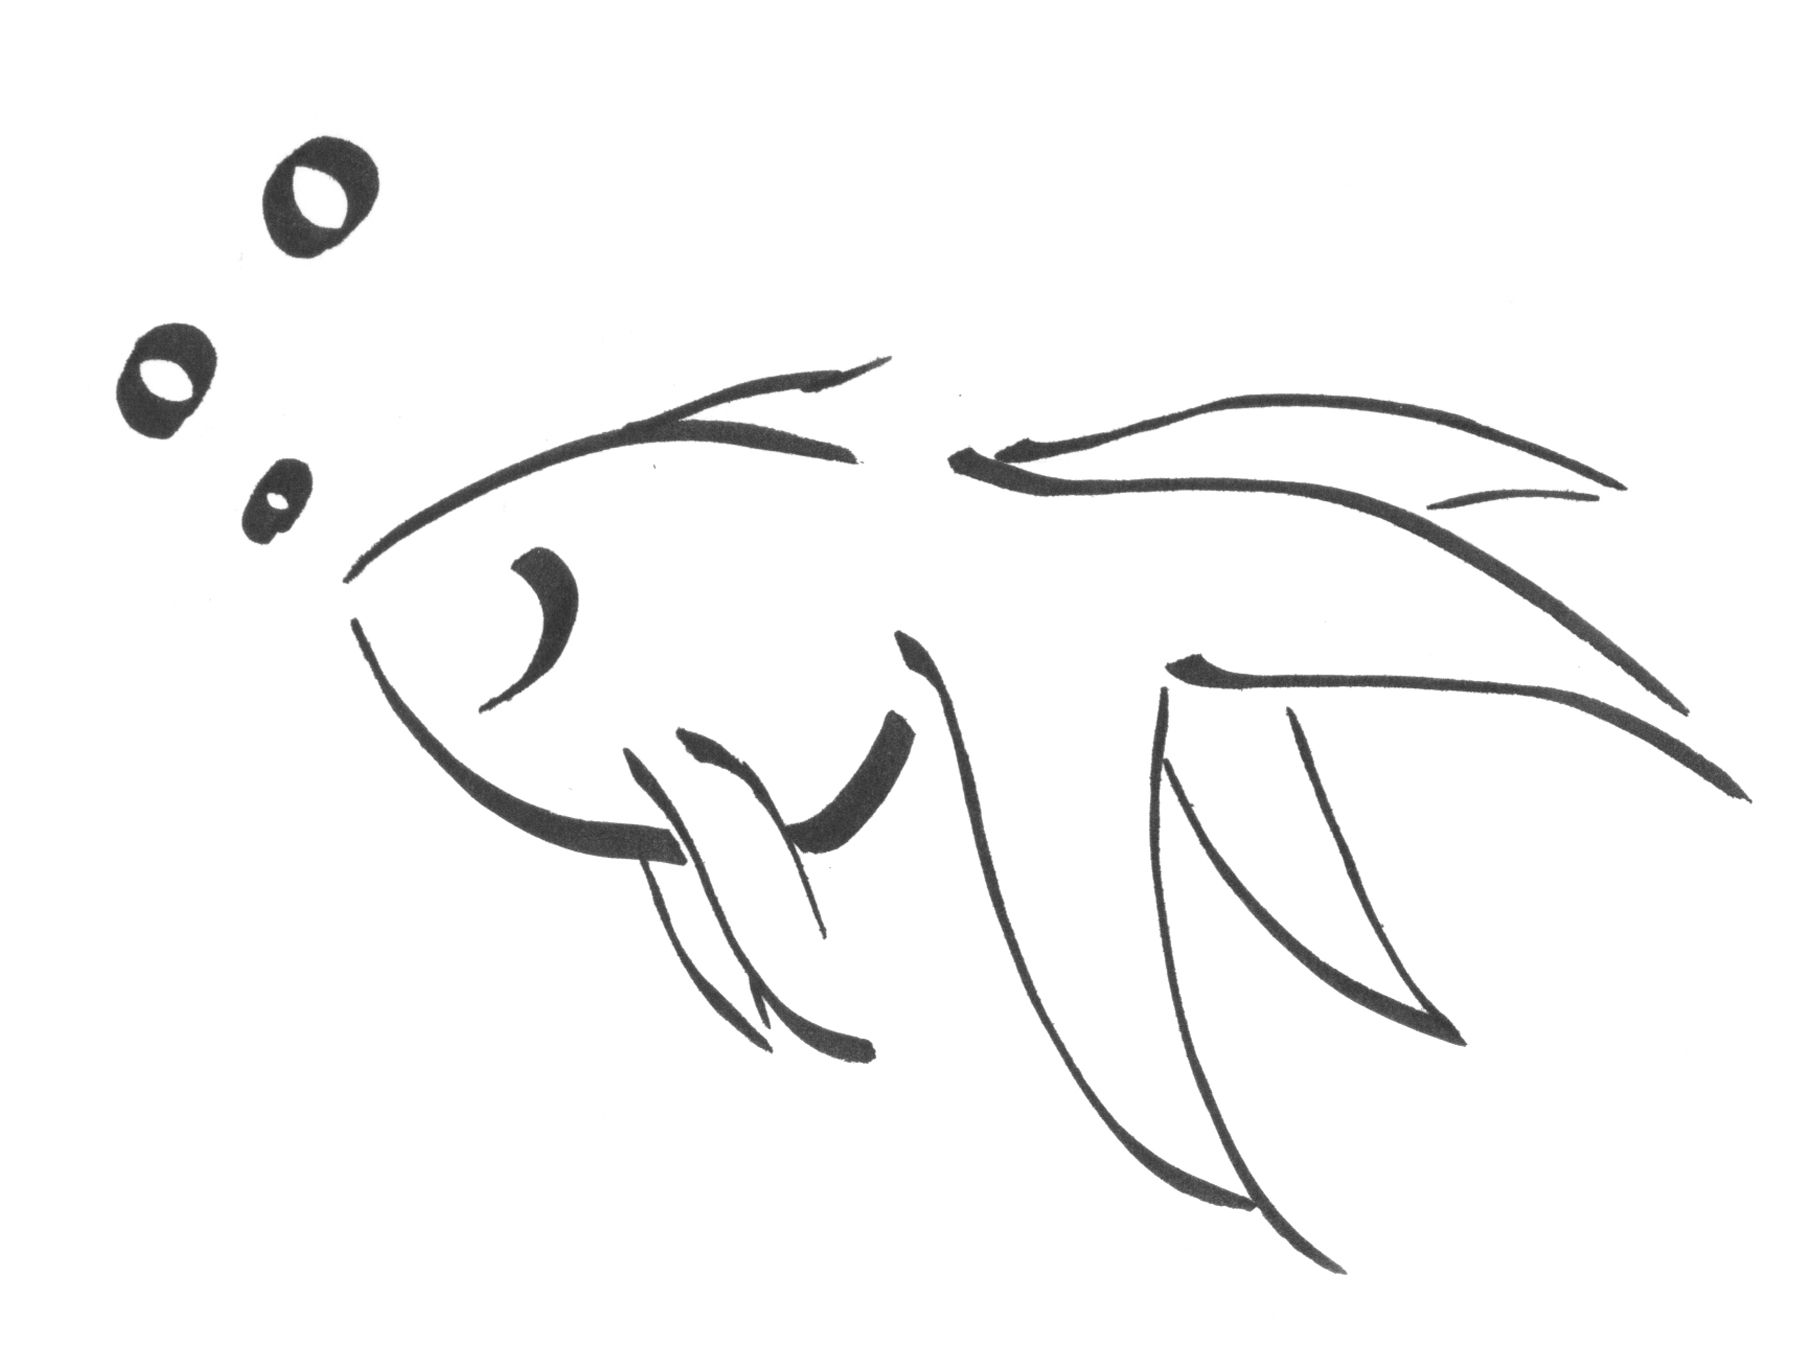 Calligraphy Goldfish By Kdragonfire8 Deviantart Com On Deviantart Art Drawings Simple Easy Drawings Outline Drawings